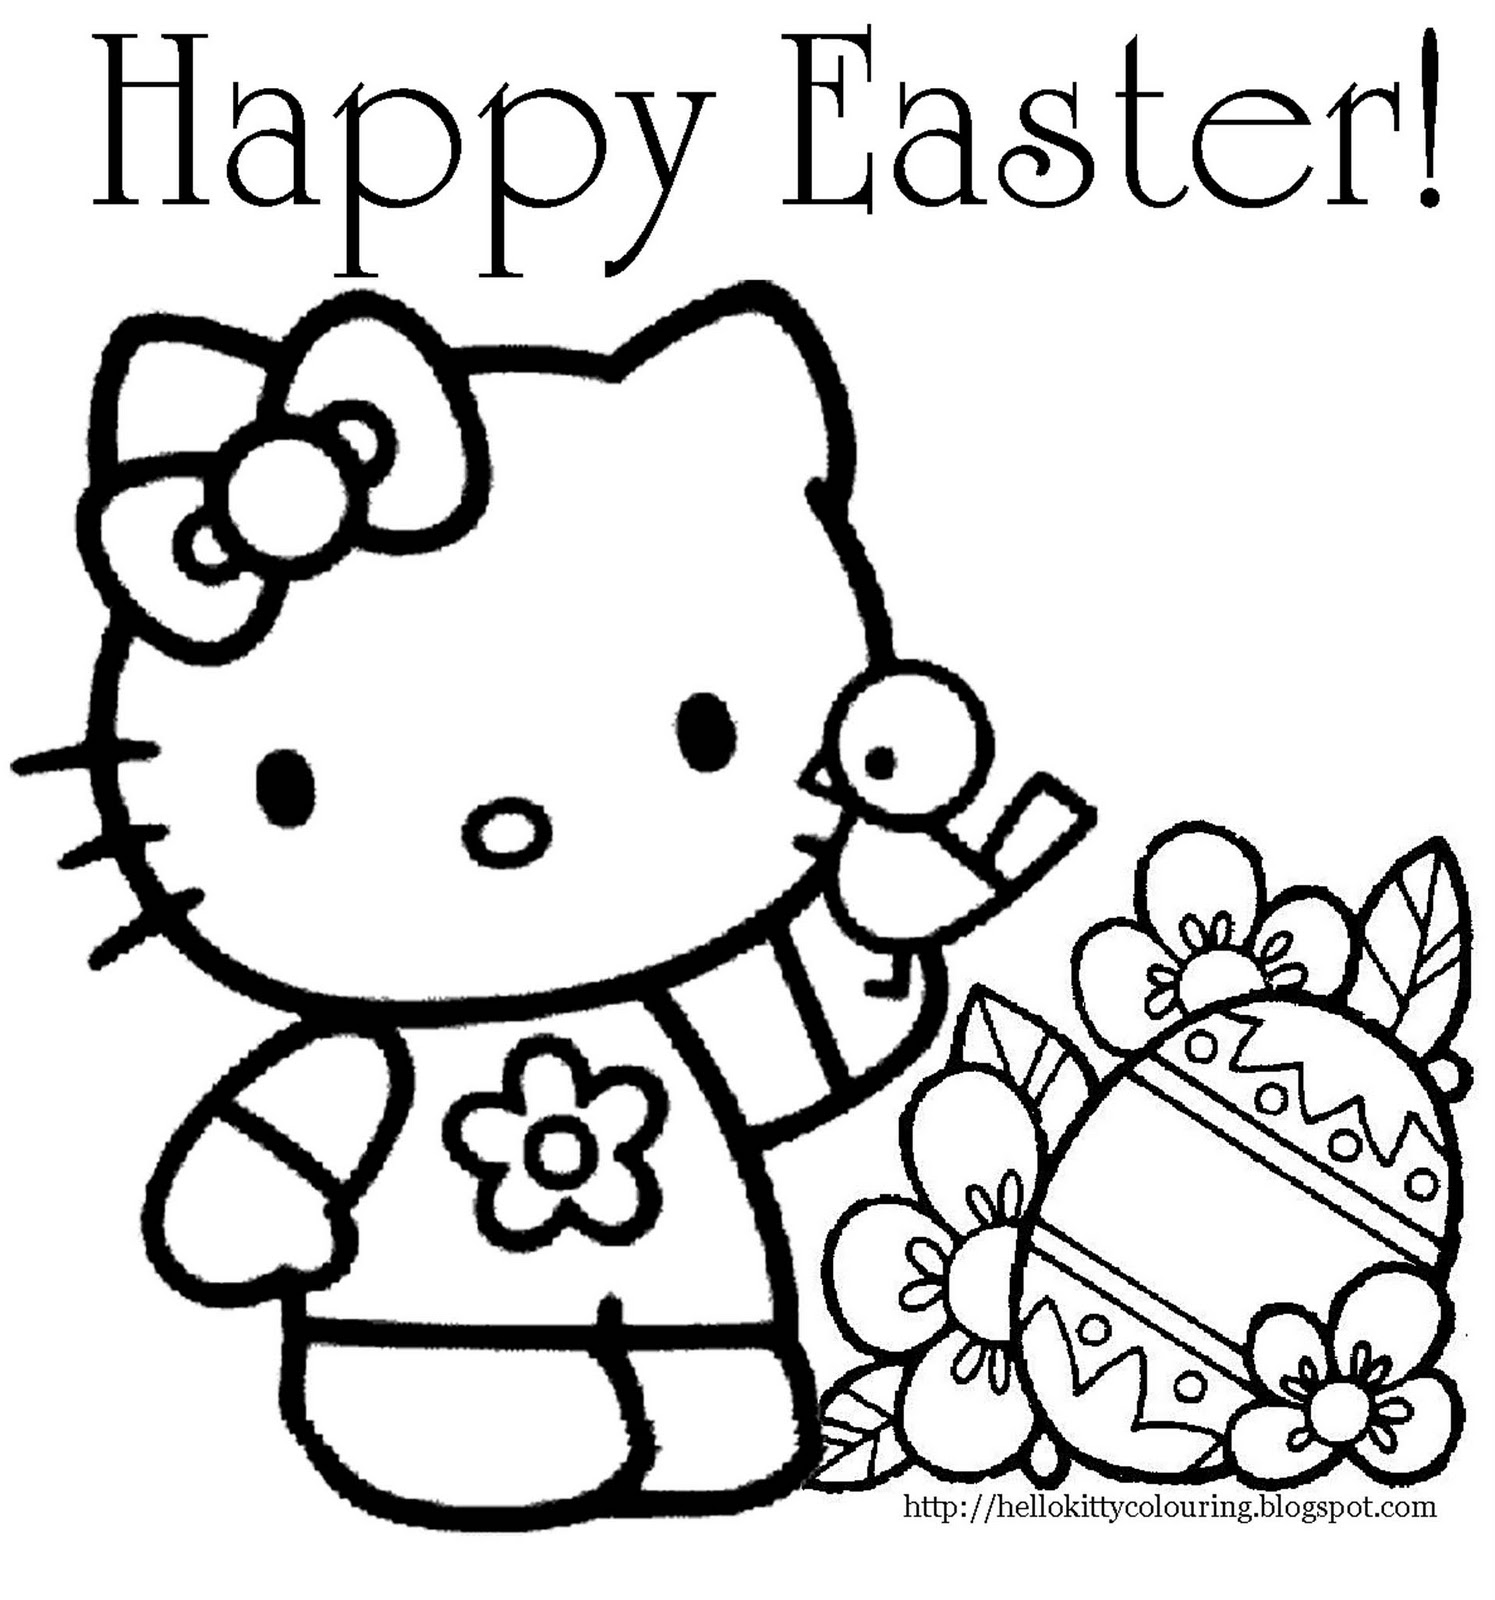 coloring pages easter - photo#12